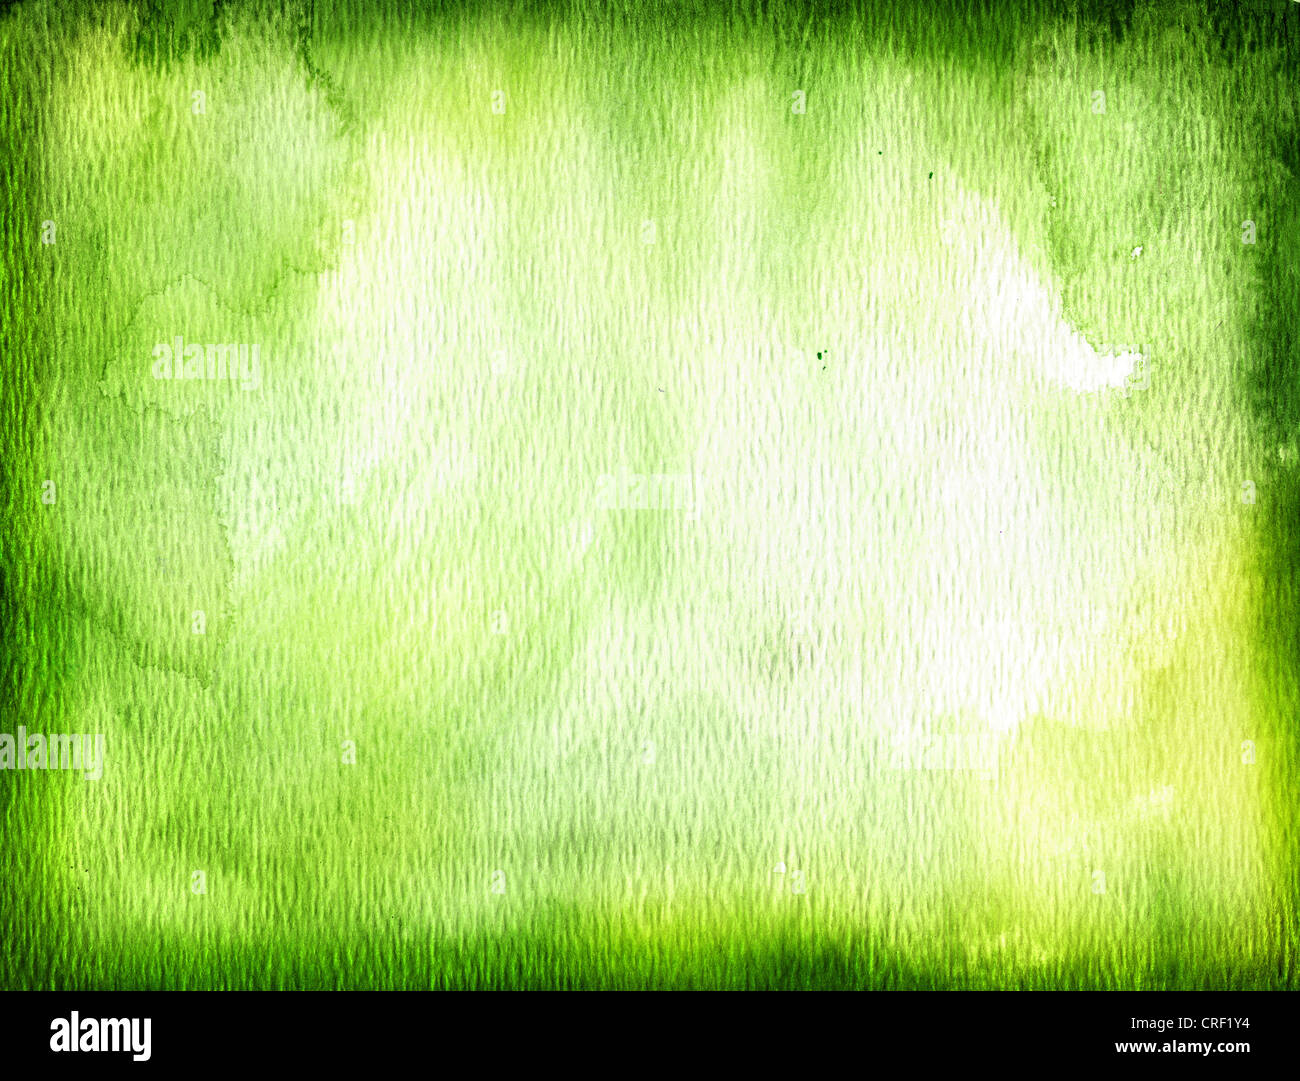 Green watercolor background - Stock Image